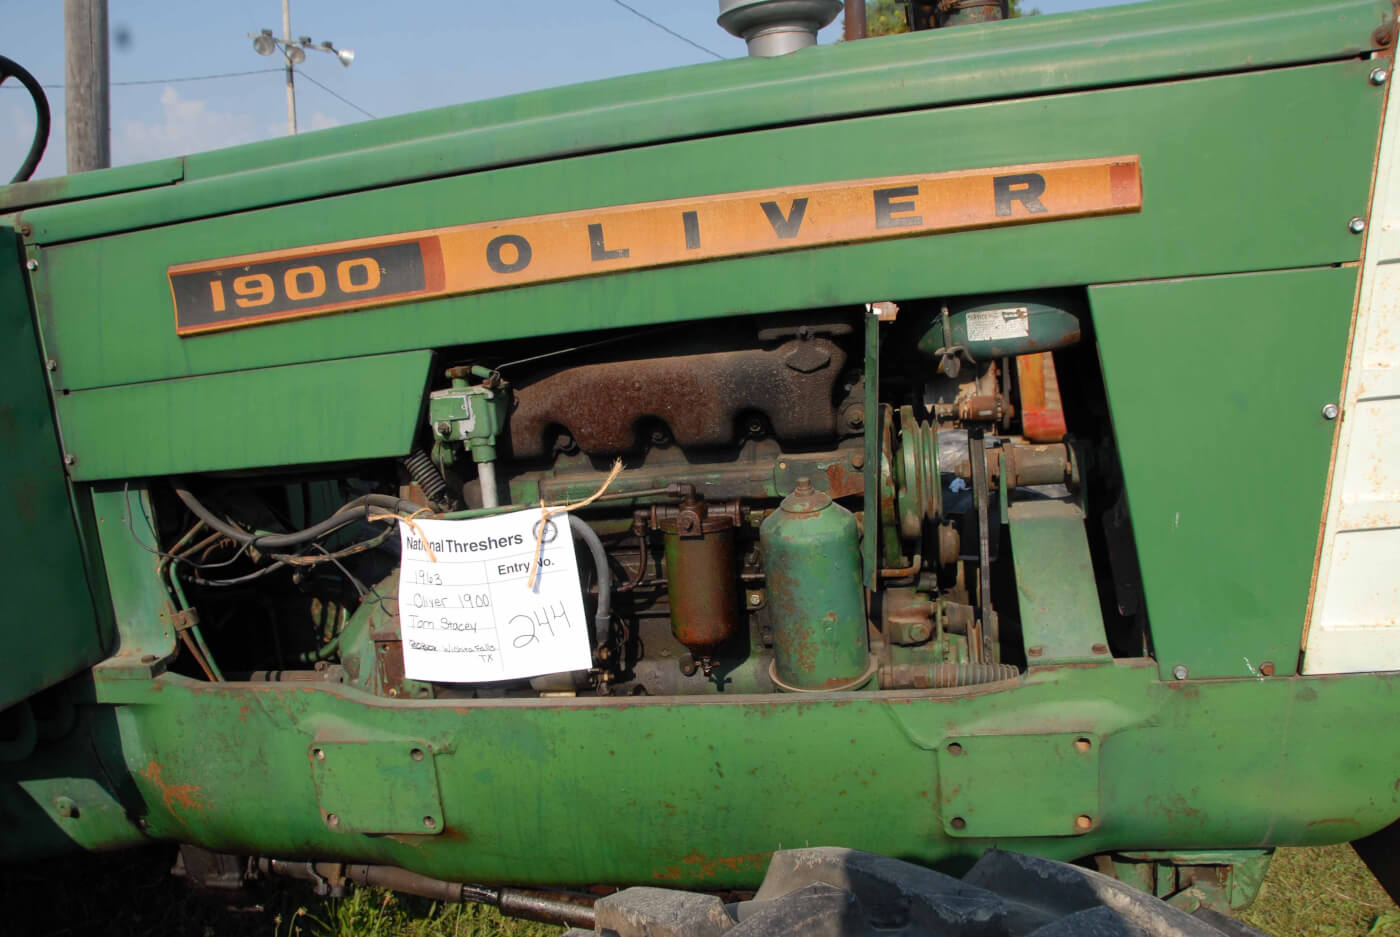 Tractor Talk Jimmy Screamin At Ollie1963 Oliver 1900 Gm 44 Fuel Filters Monstrous Oil And Show The Kind Of Flow These Engines Generated